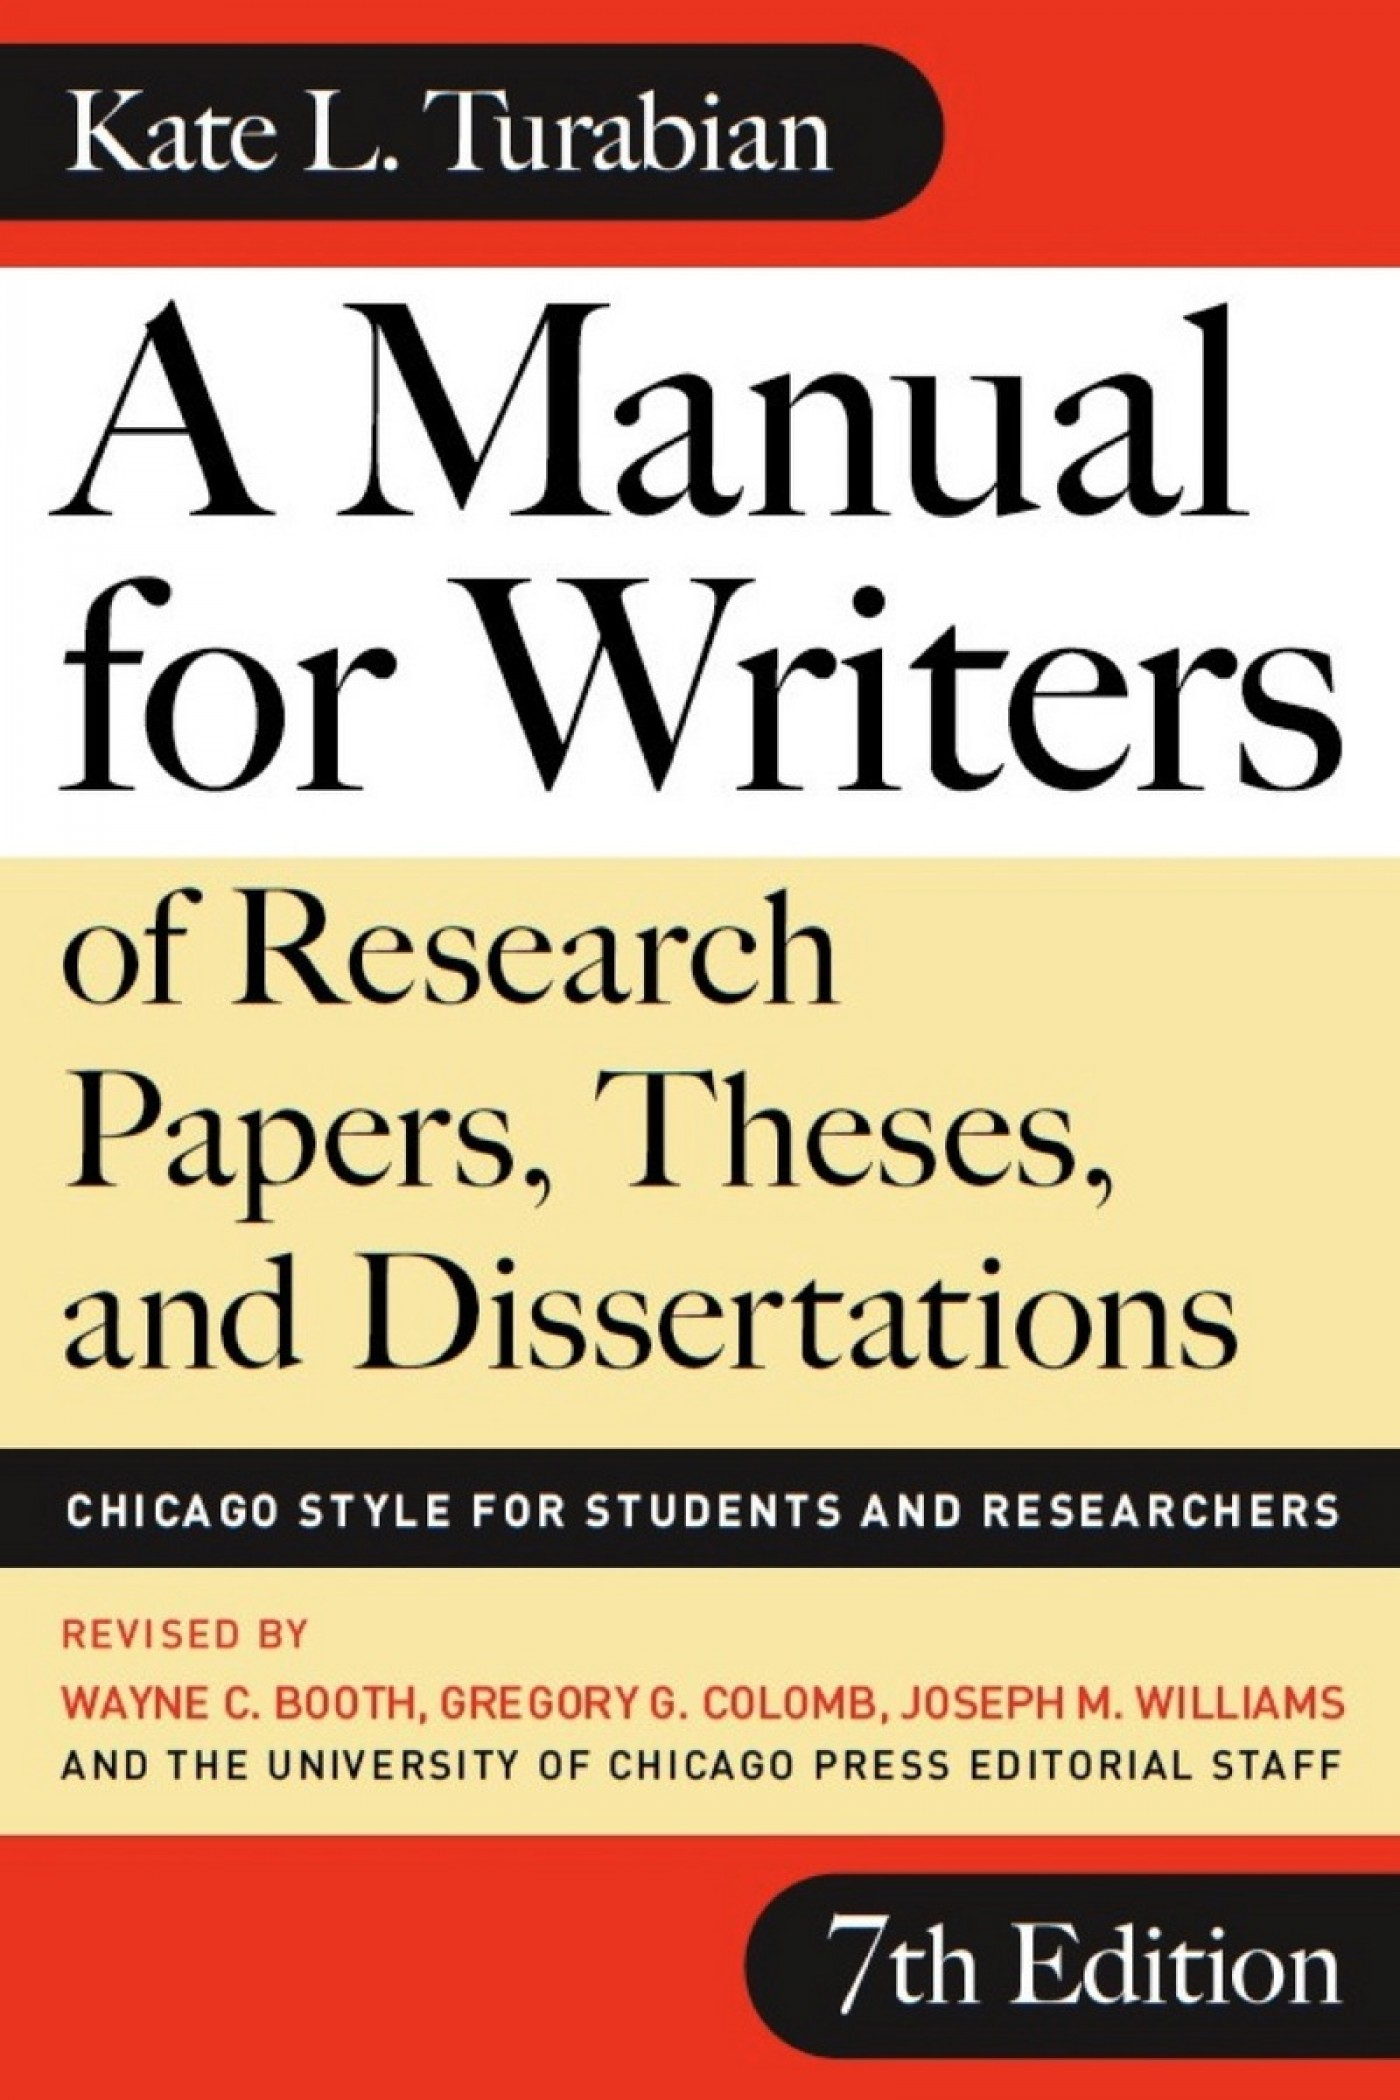 008 Manual For Writers Of Researchs Theses And Dissertations Frontcover Magnificent Research Papers A Amazon 9th Edition 8th 13 1400